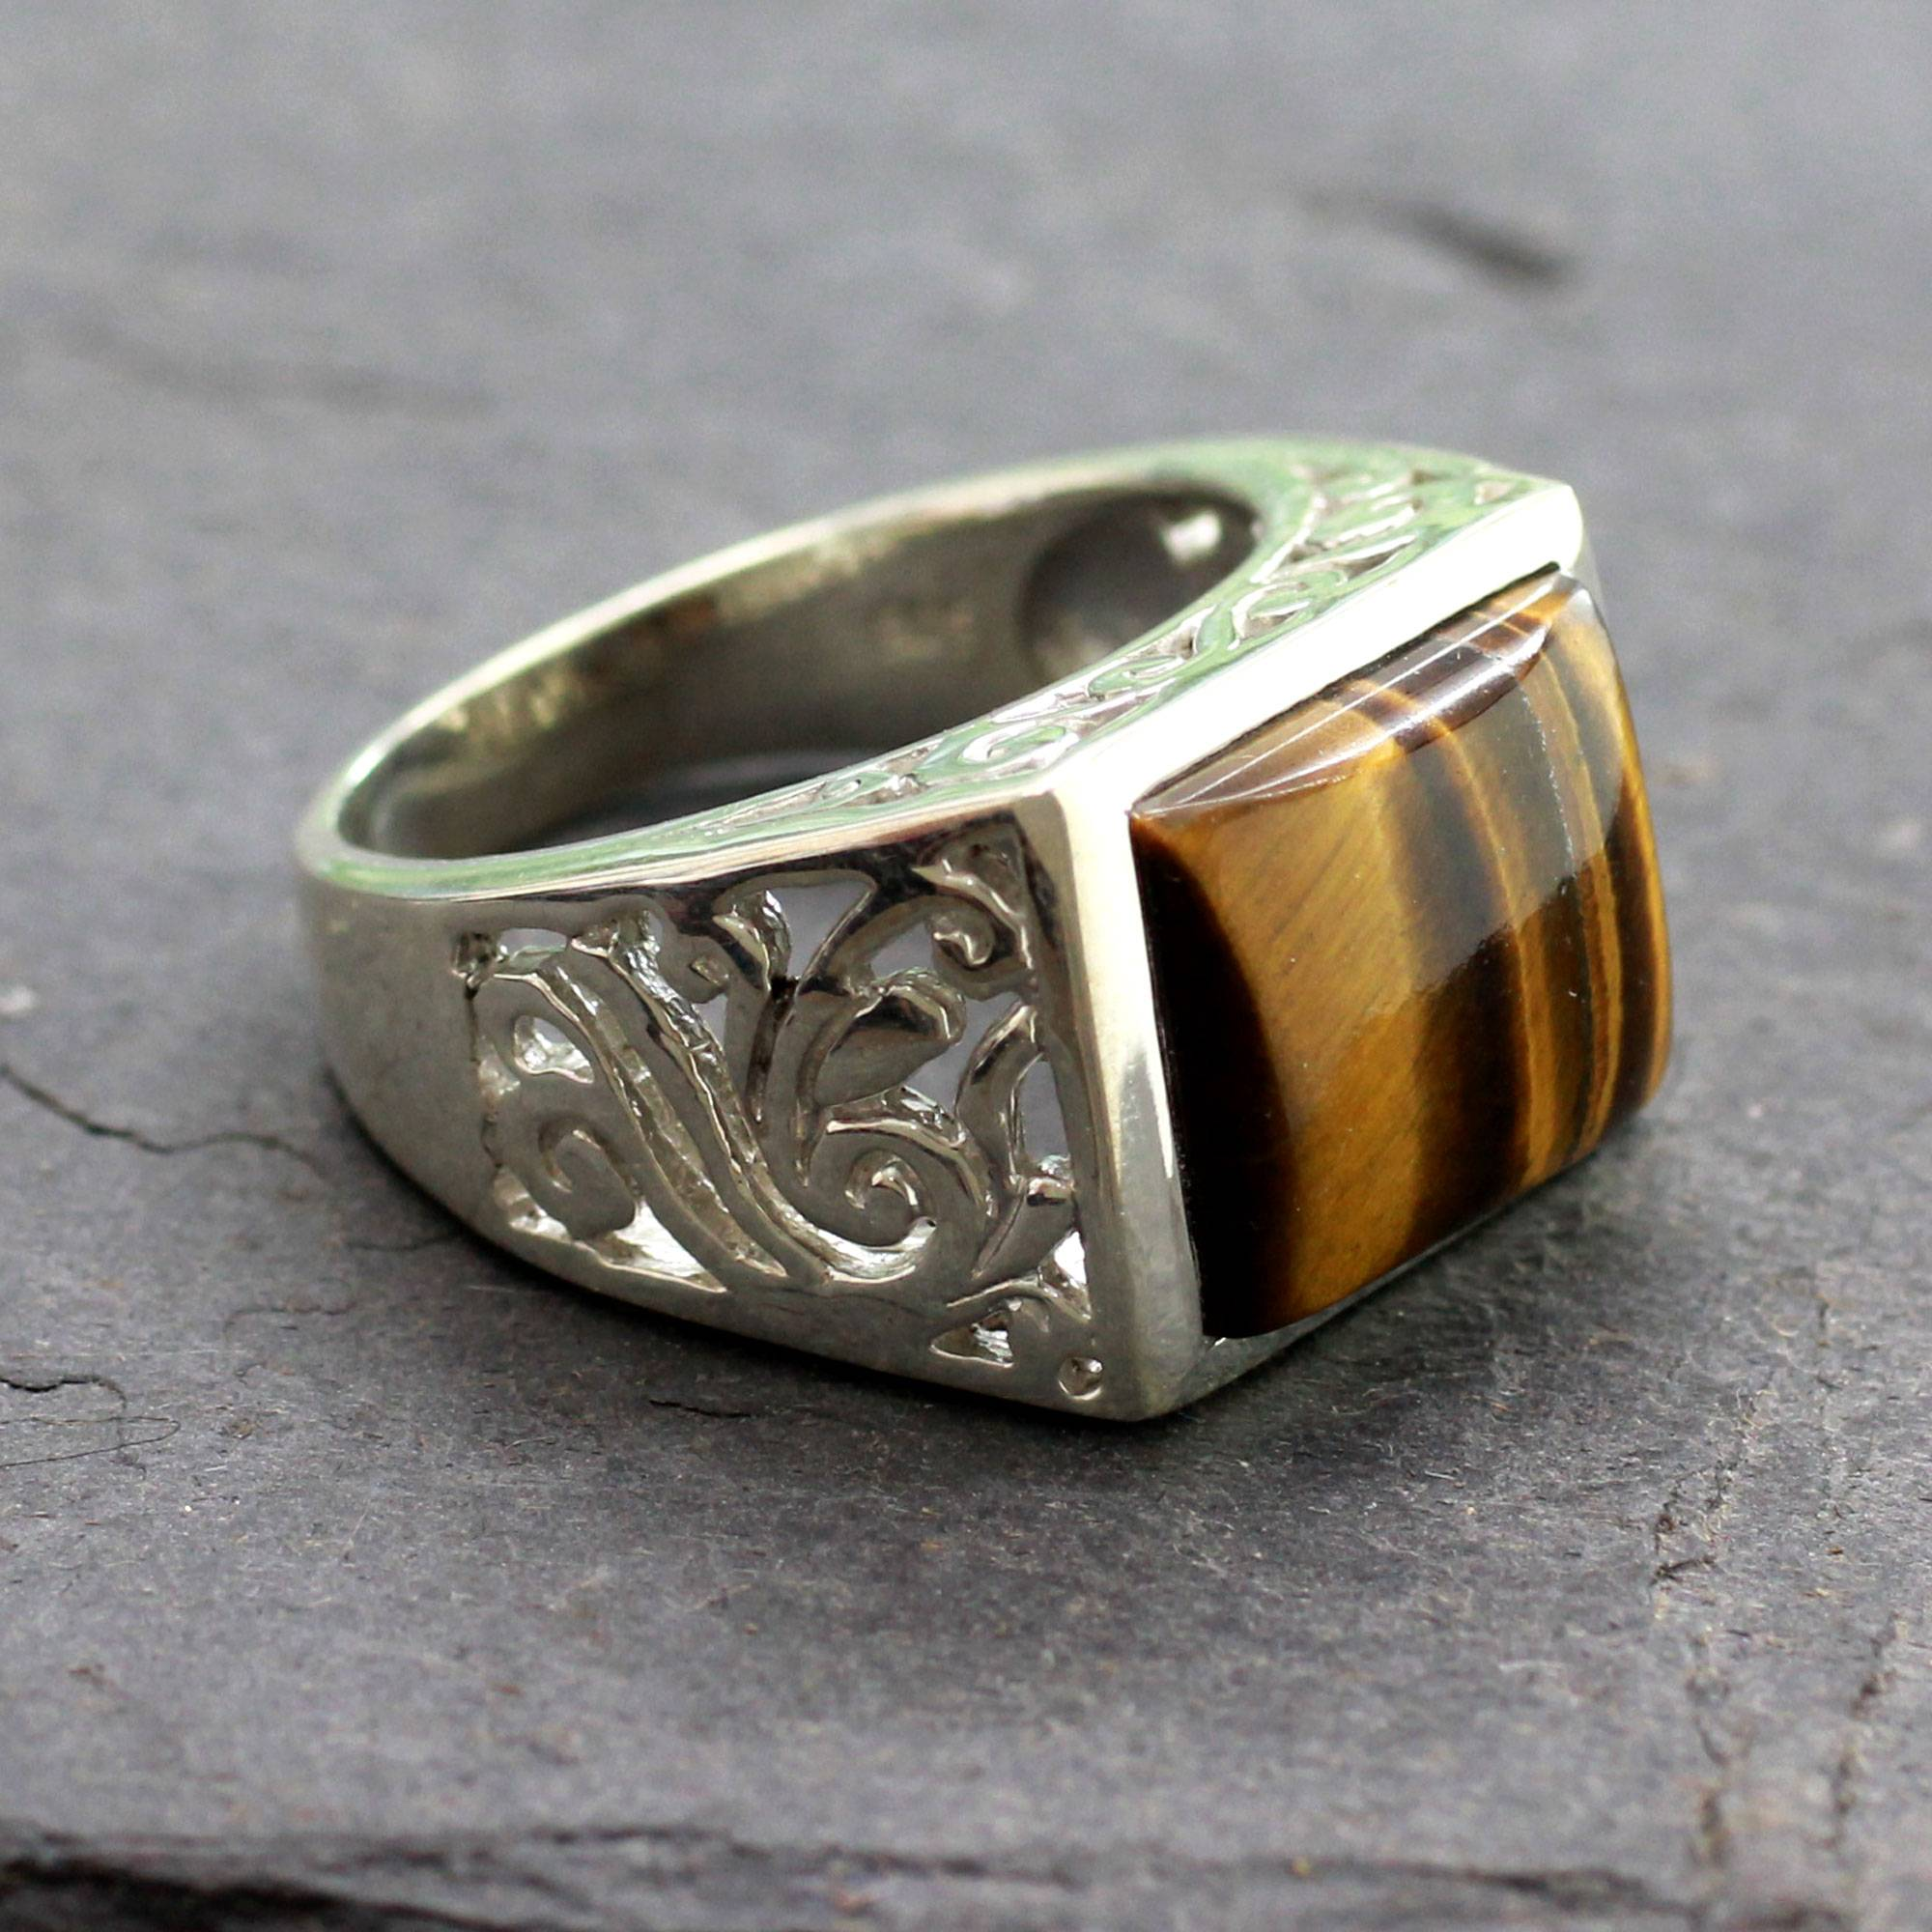 custom wedding band ba com crazyass made jewelry medieval crazyassjewelry tale rings silver from pagan a order to by buy leaf custommade ring oak fairy